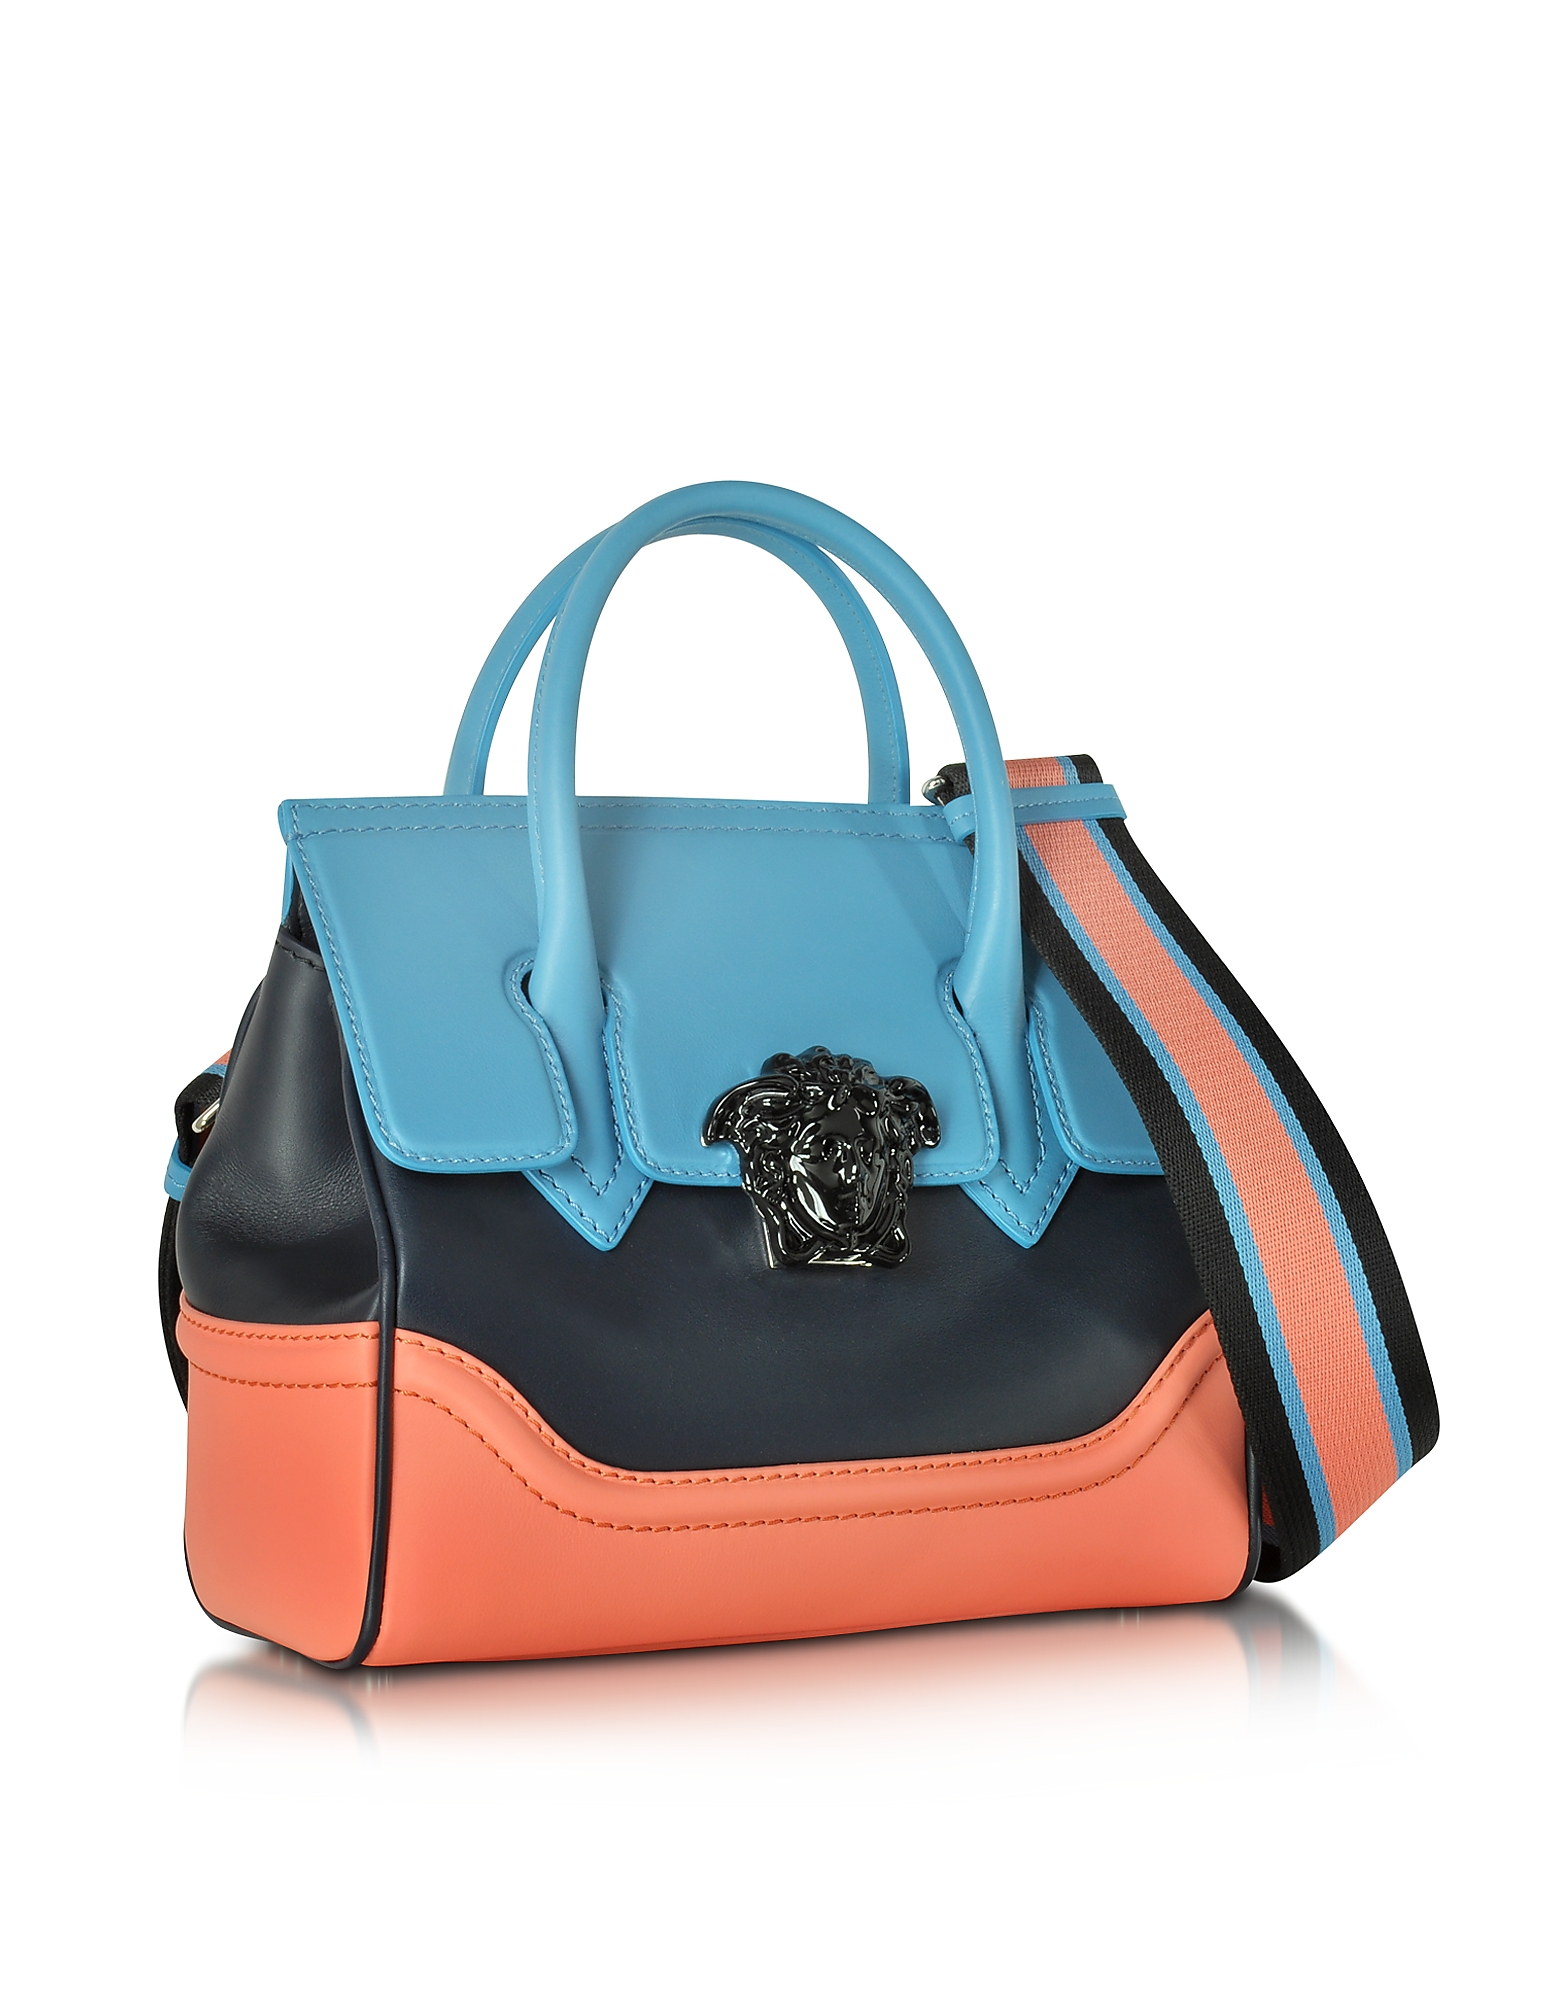 36d66574c5b7 Lyst - Versace Small Palazzo Empire Color Block Leather Tote Bag in Pink